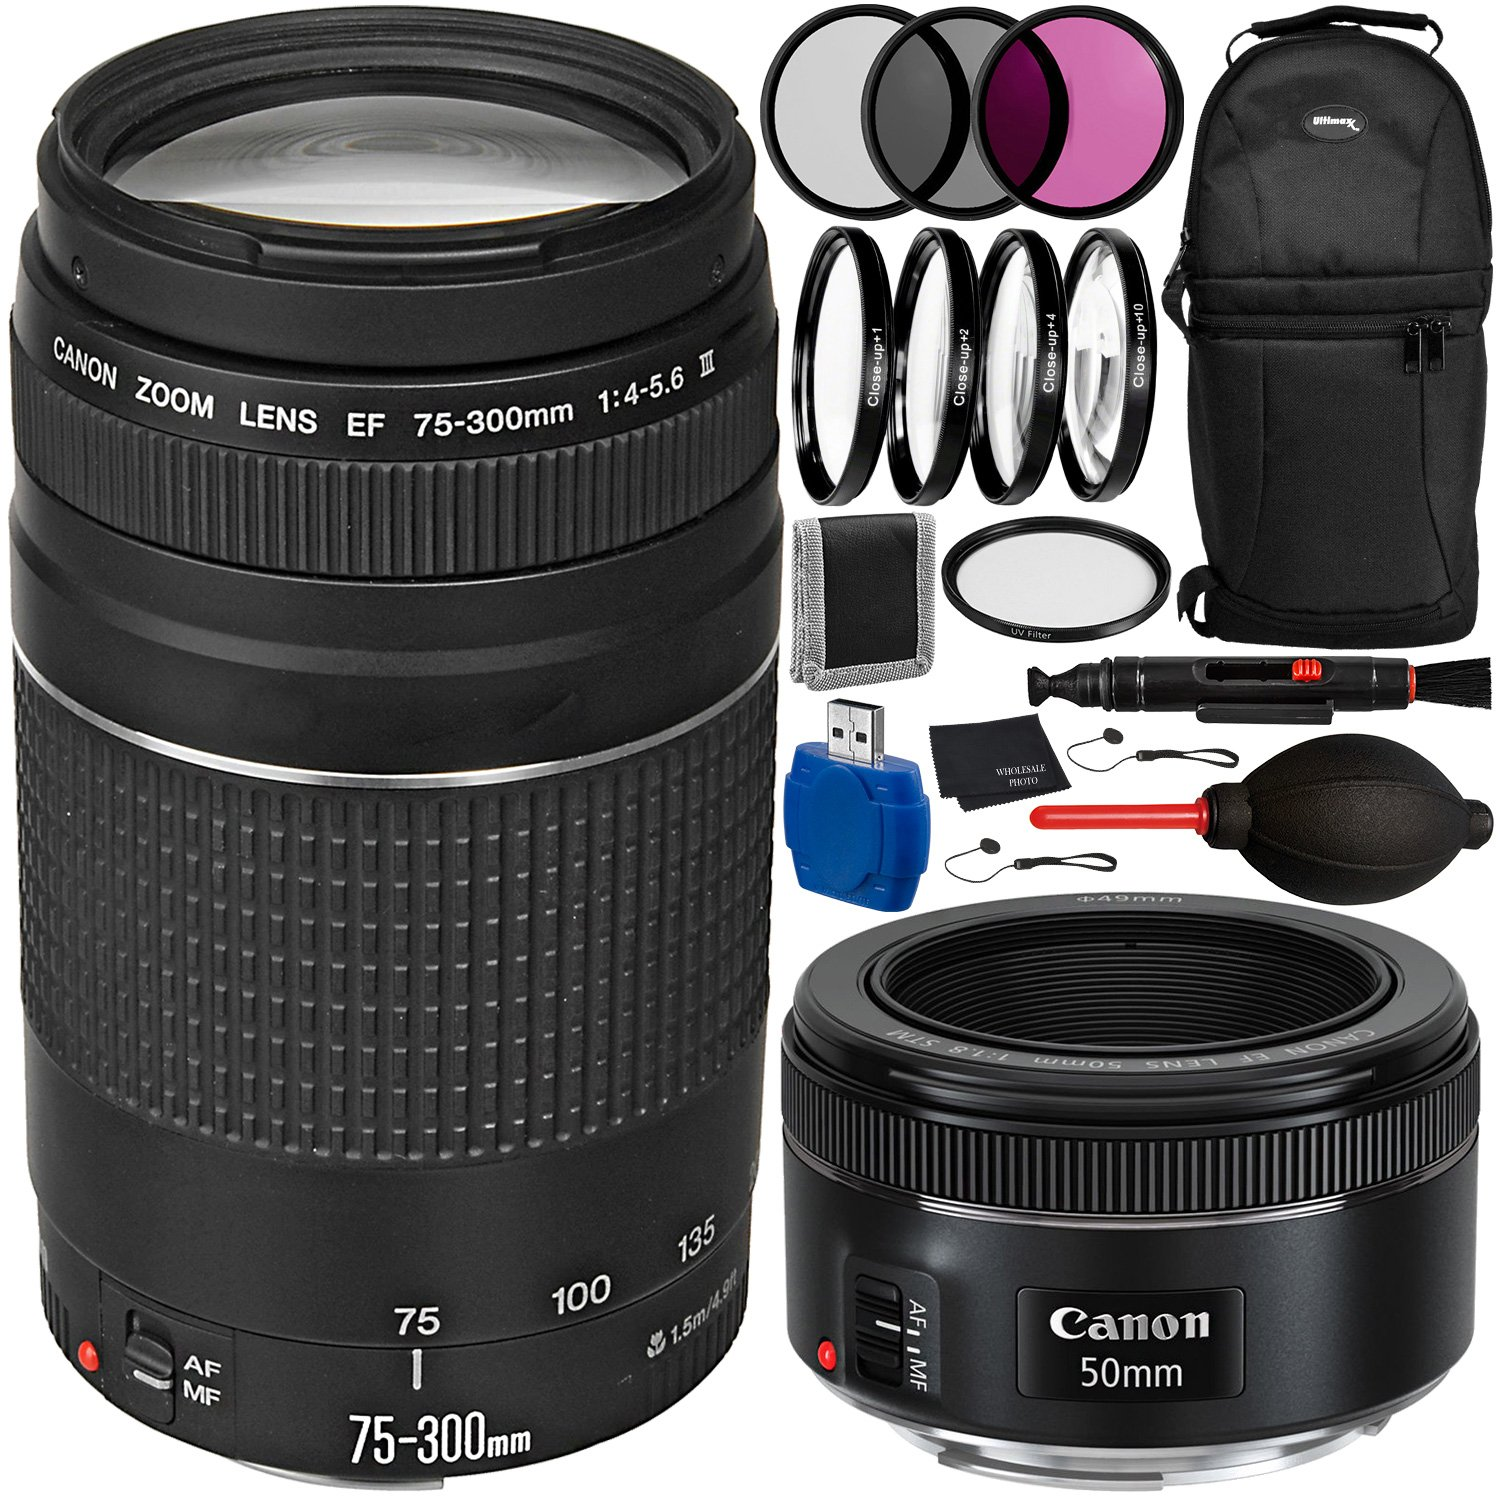 Canon EOS 70D DSLR Camera with 75-300mm f/4.0-5.6 III & 50mm f/1.8 STM Lenses Bundle